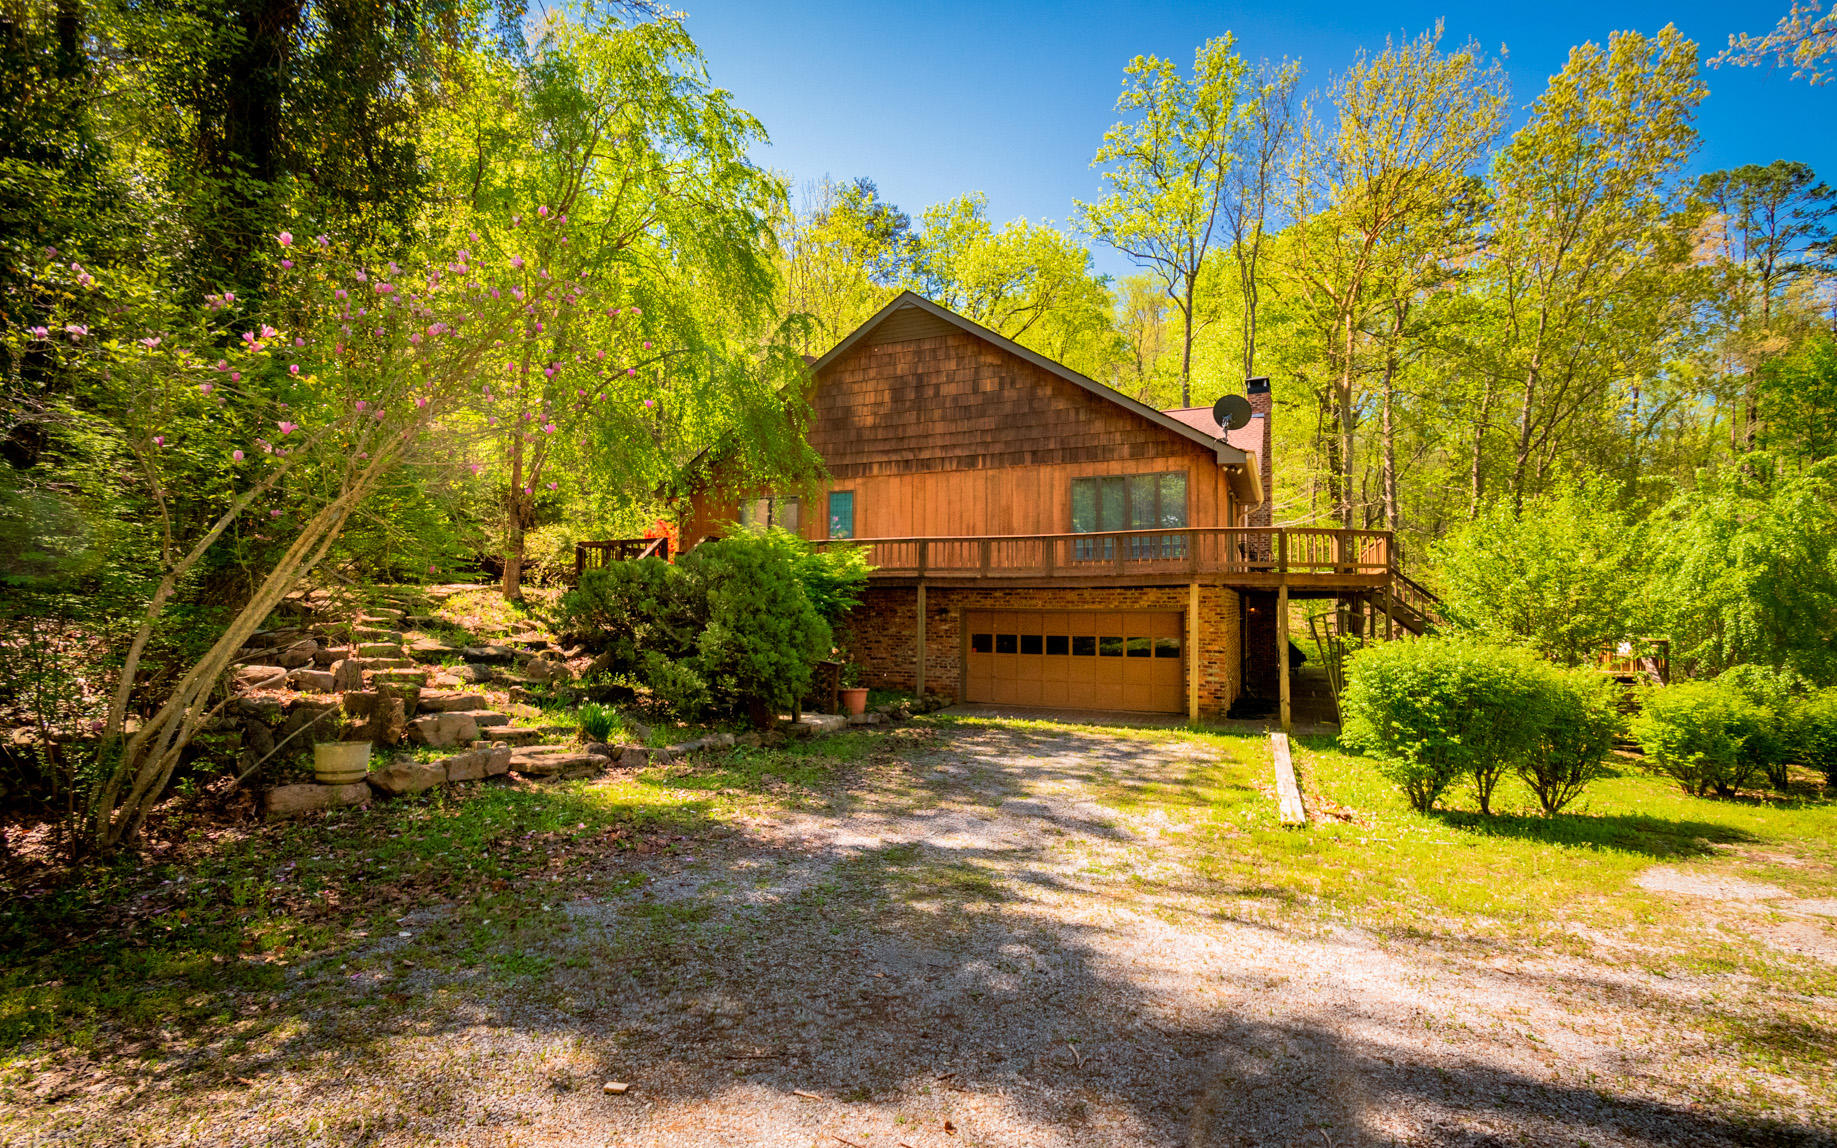 6050 Mullins Cove Rd, Whitwell, TN 37397